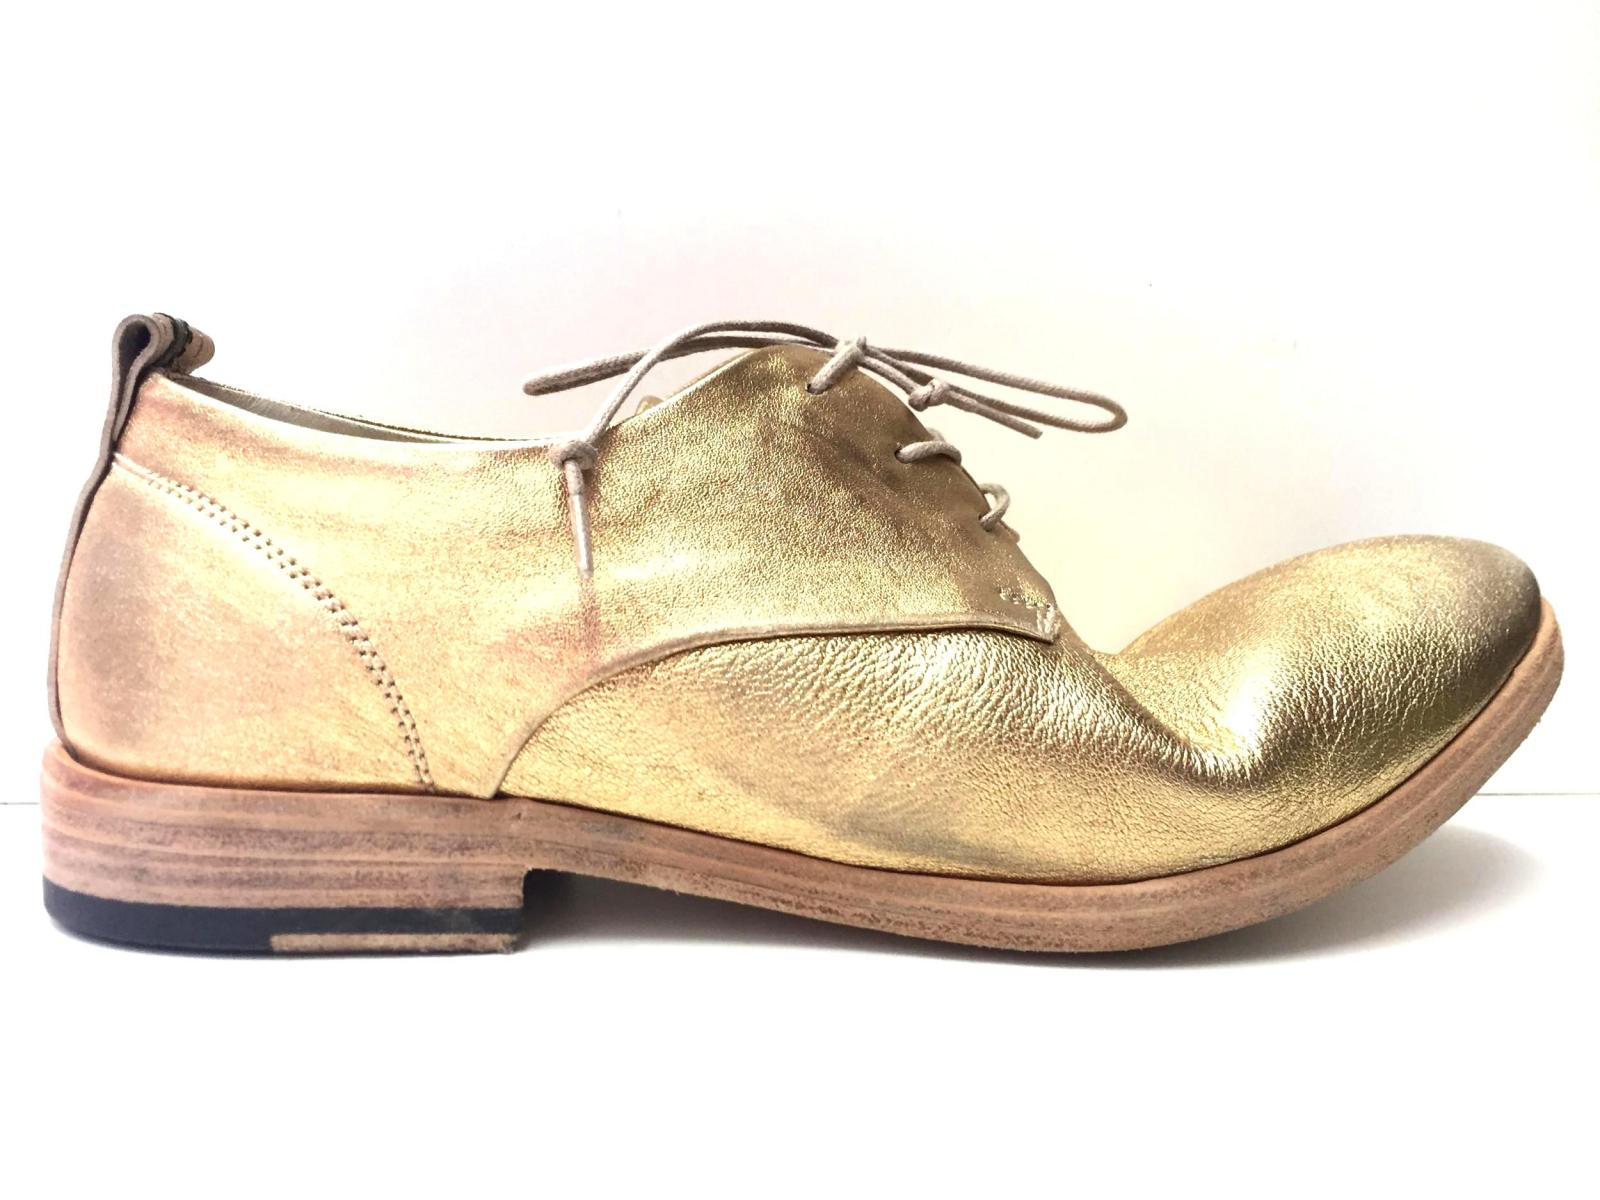 SCARPE CASUAL DONNA SARTORI GOLD MISS DUKE D53427 1340 PELLE ORIGINALE PE NEW